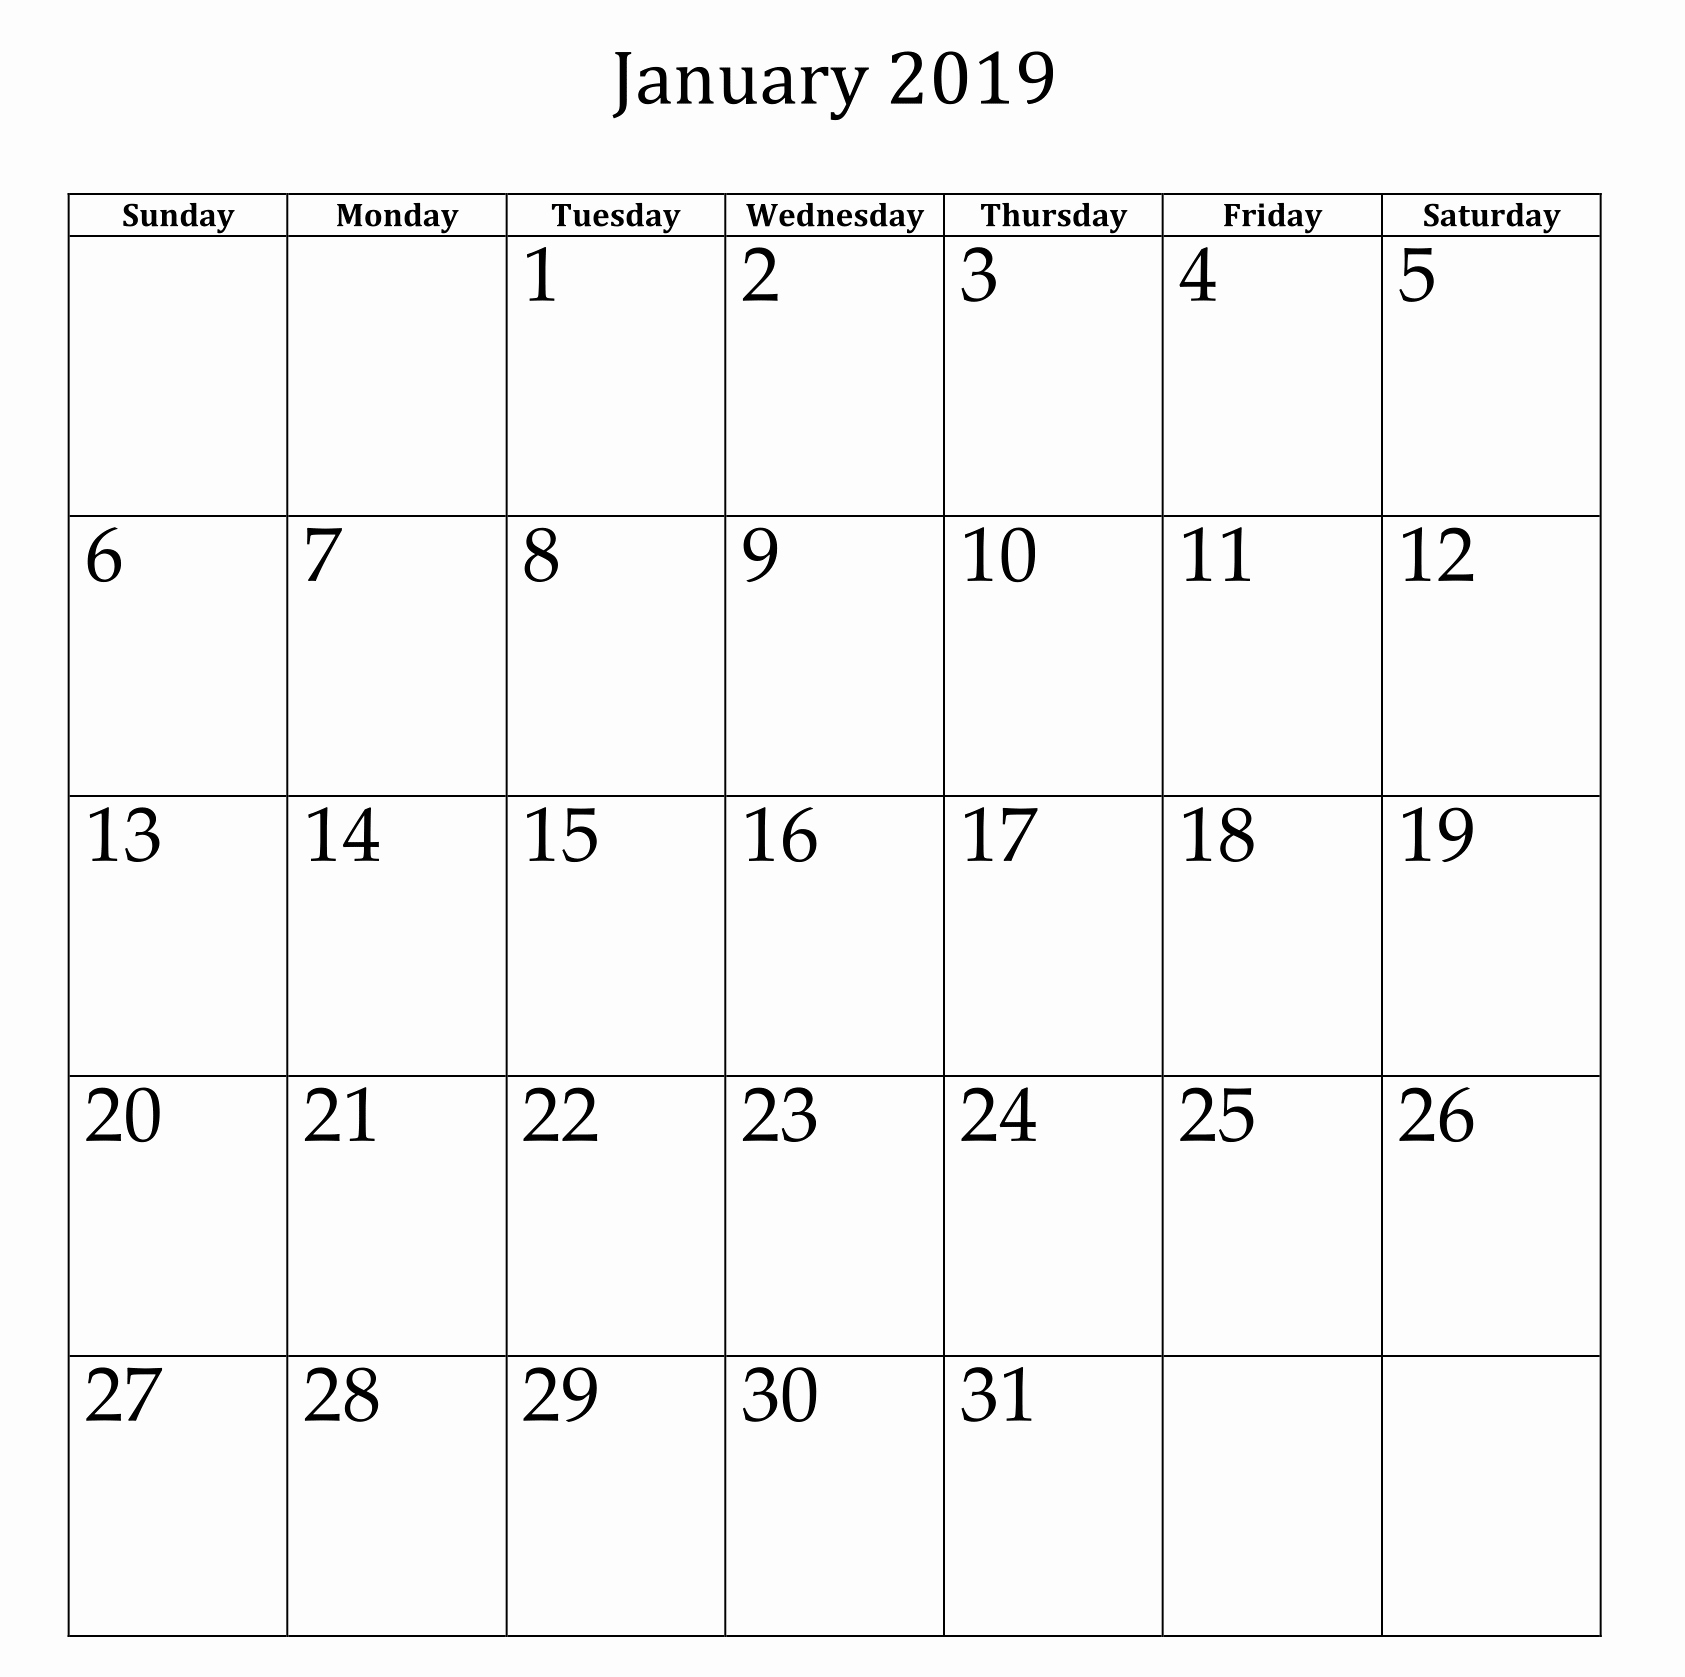 Blank January 2019 Calendar Template Luxury January 2019 Blank Calendar